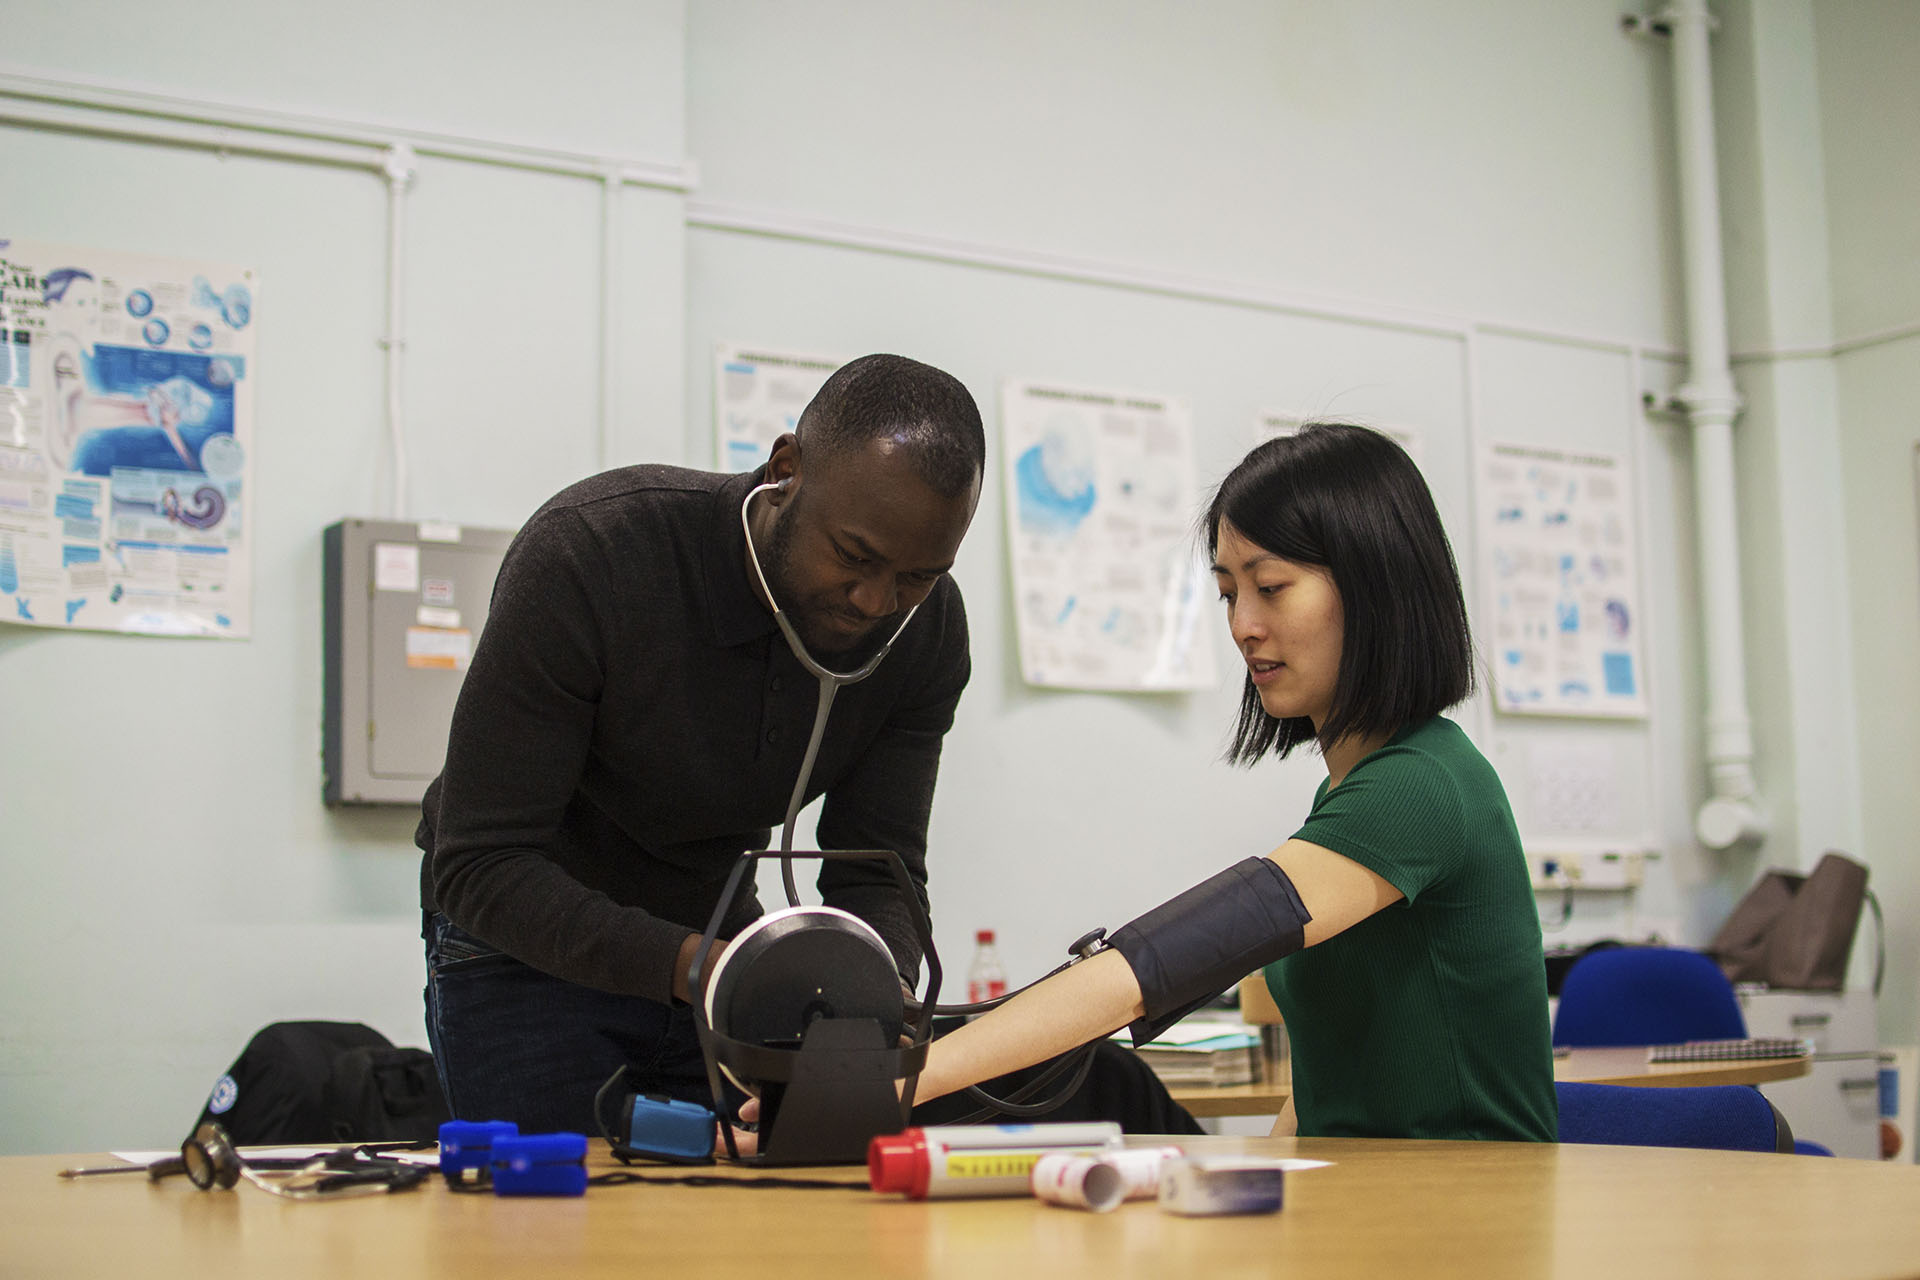 Male student takes female student's blood pressure in a classroom setting